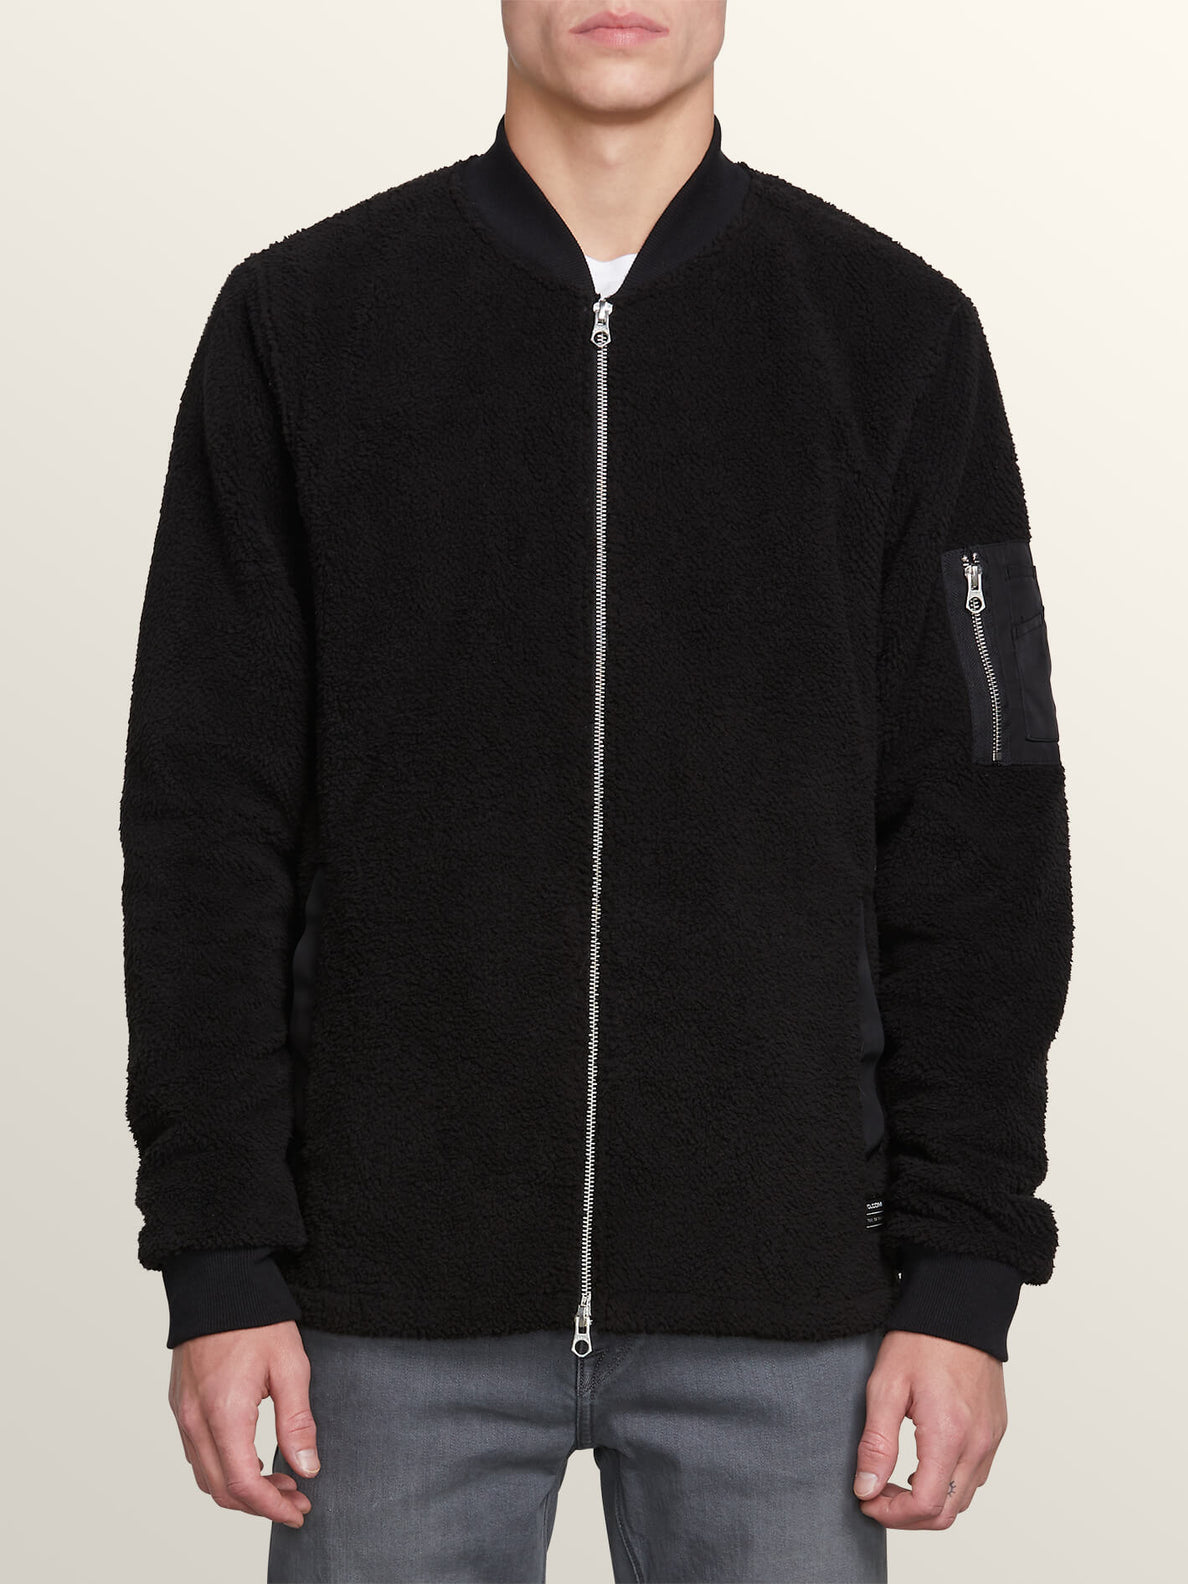 Field Polar Fleece In Black, Front View